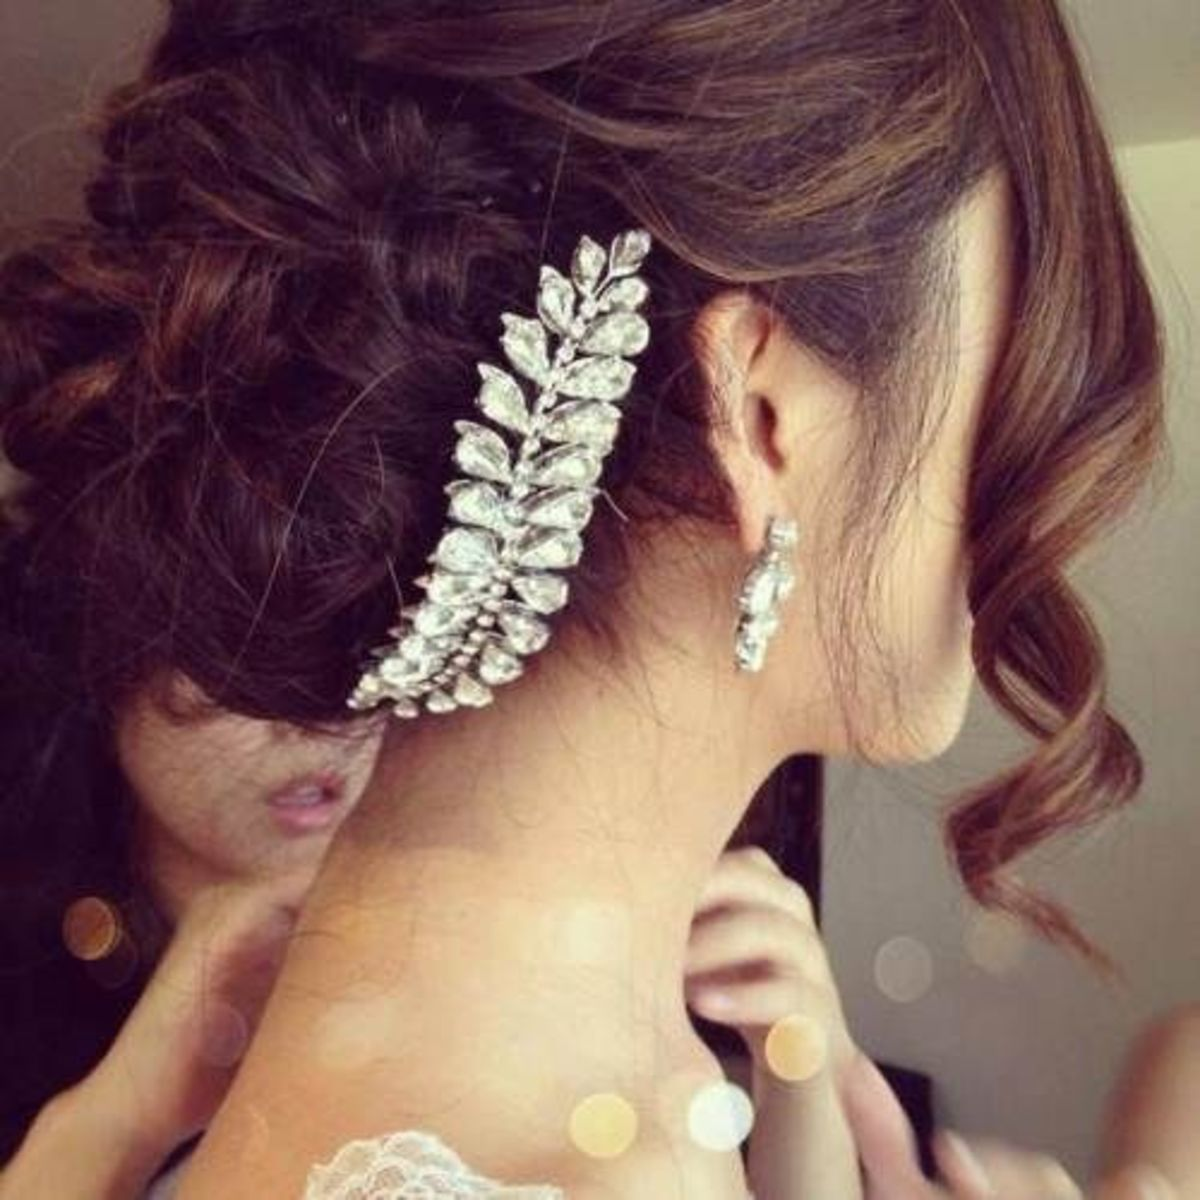 beautful hair bun with below the bun stone jewellery perfect for a wedding look